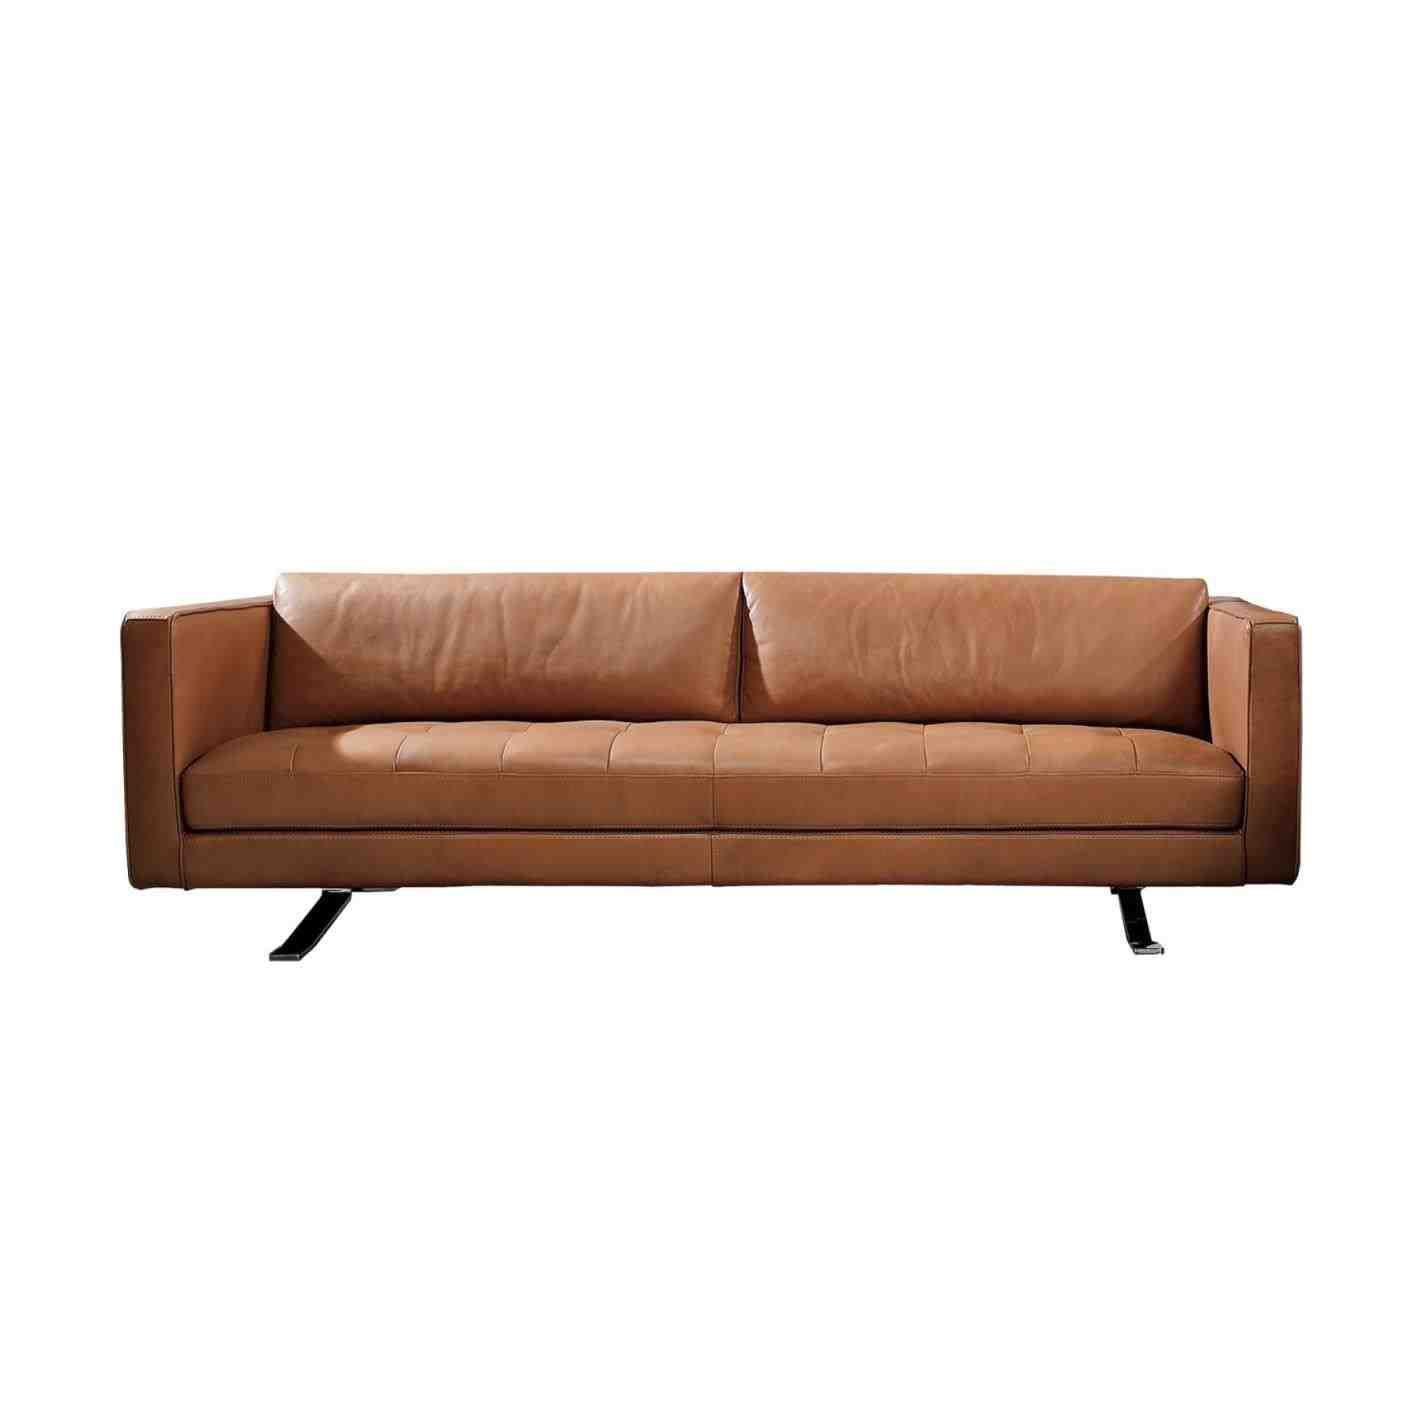 Cheap Leather Sofas Sydney   Interior Sofa Bed For Sale Emilygarrod.  Ex Display Furniture Clearance Sale U2013 Beyond Funiture Orso Armchair Brand  New. ...